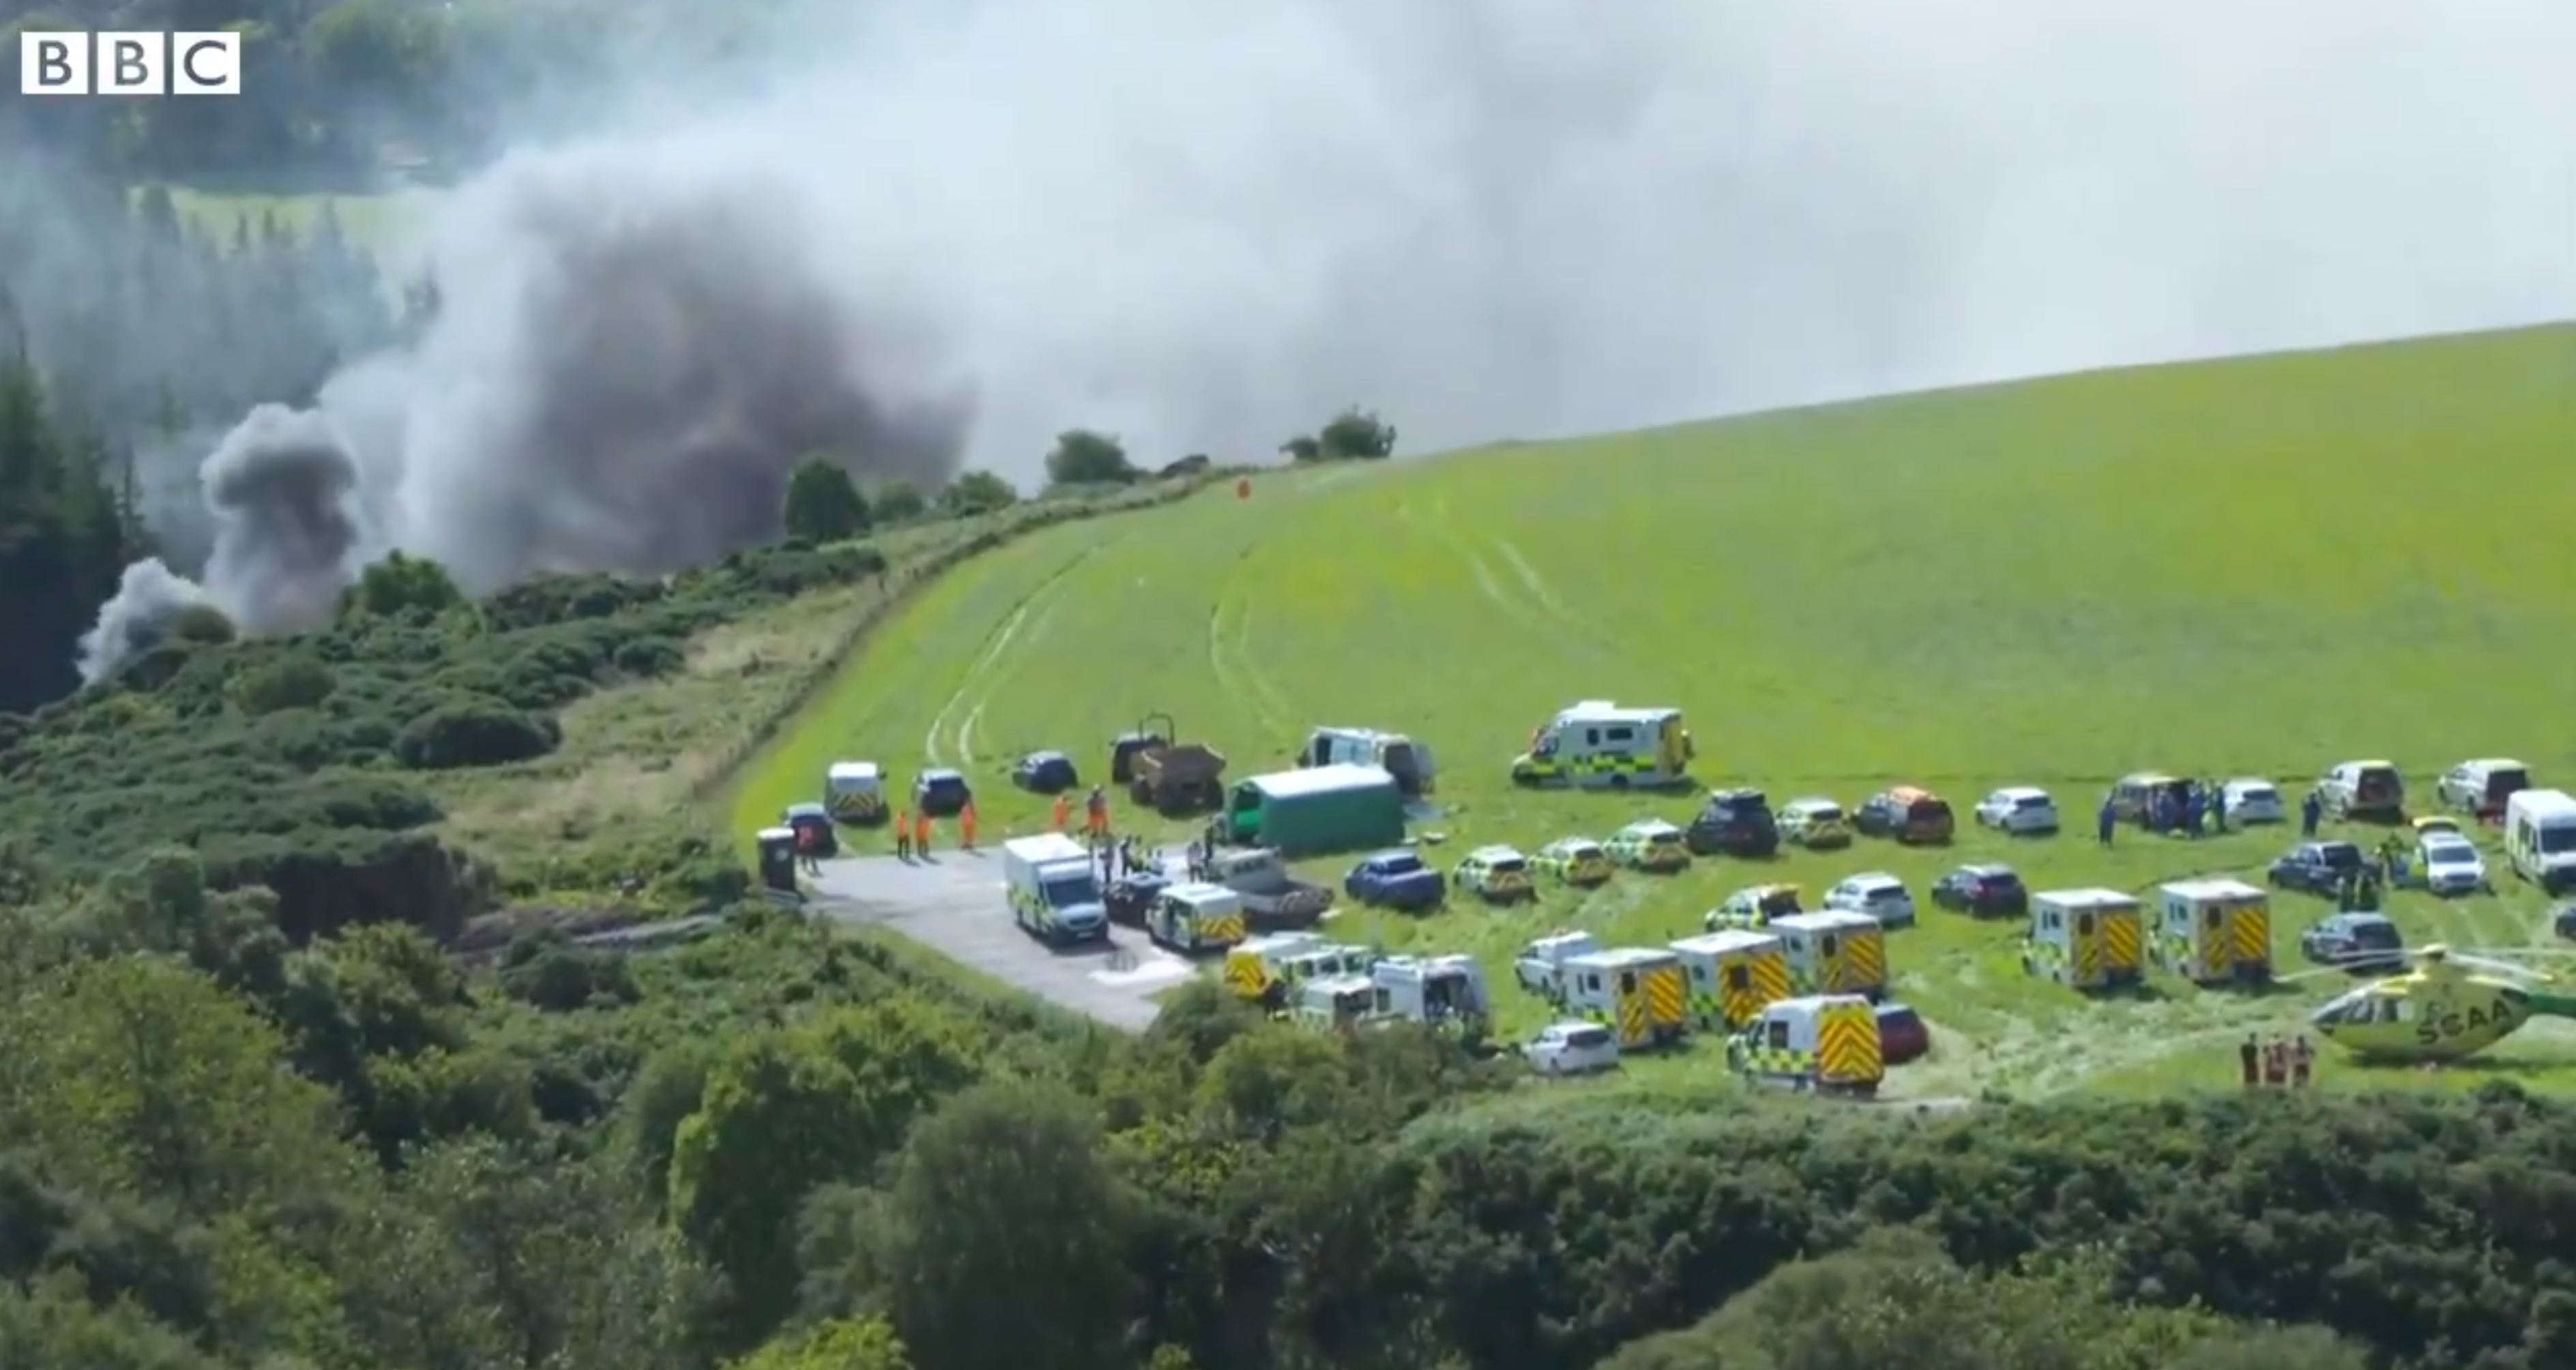 Emergency services at the scene of a train derailment near Stonehaven